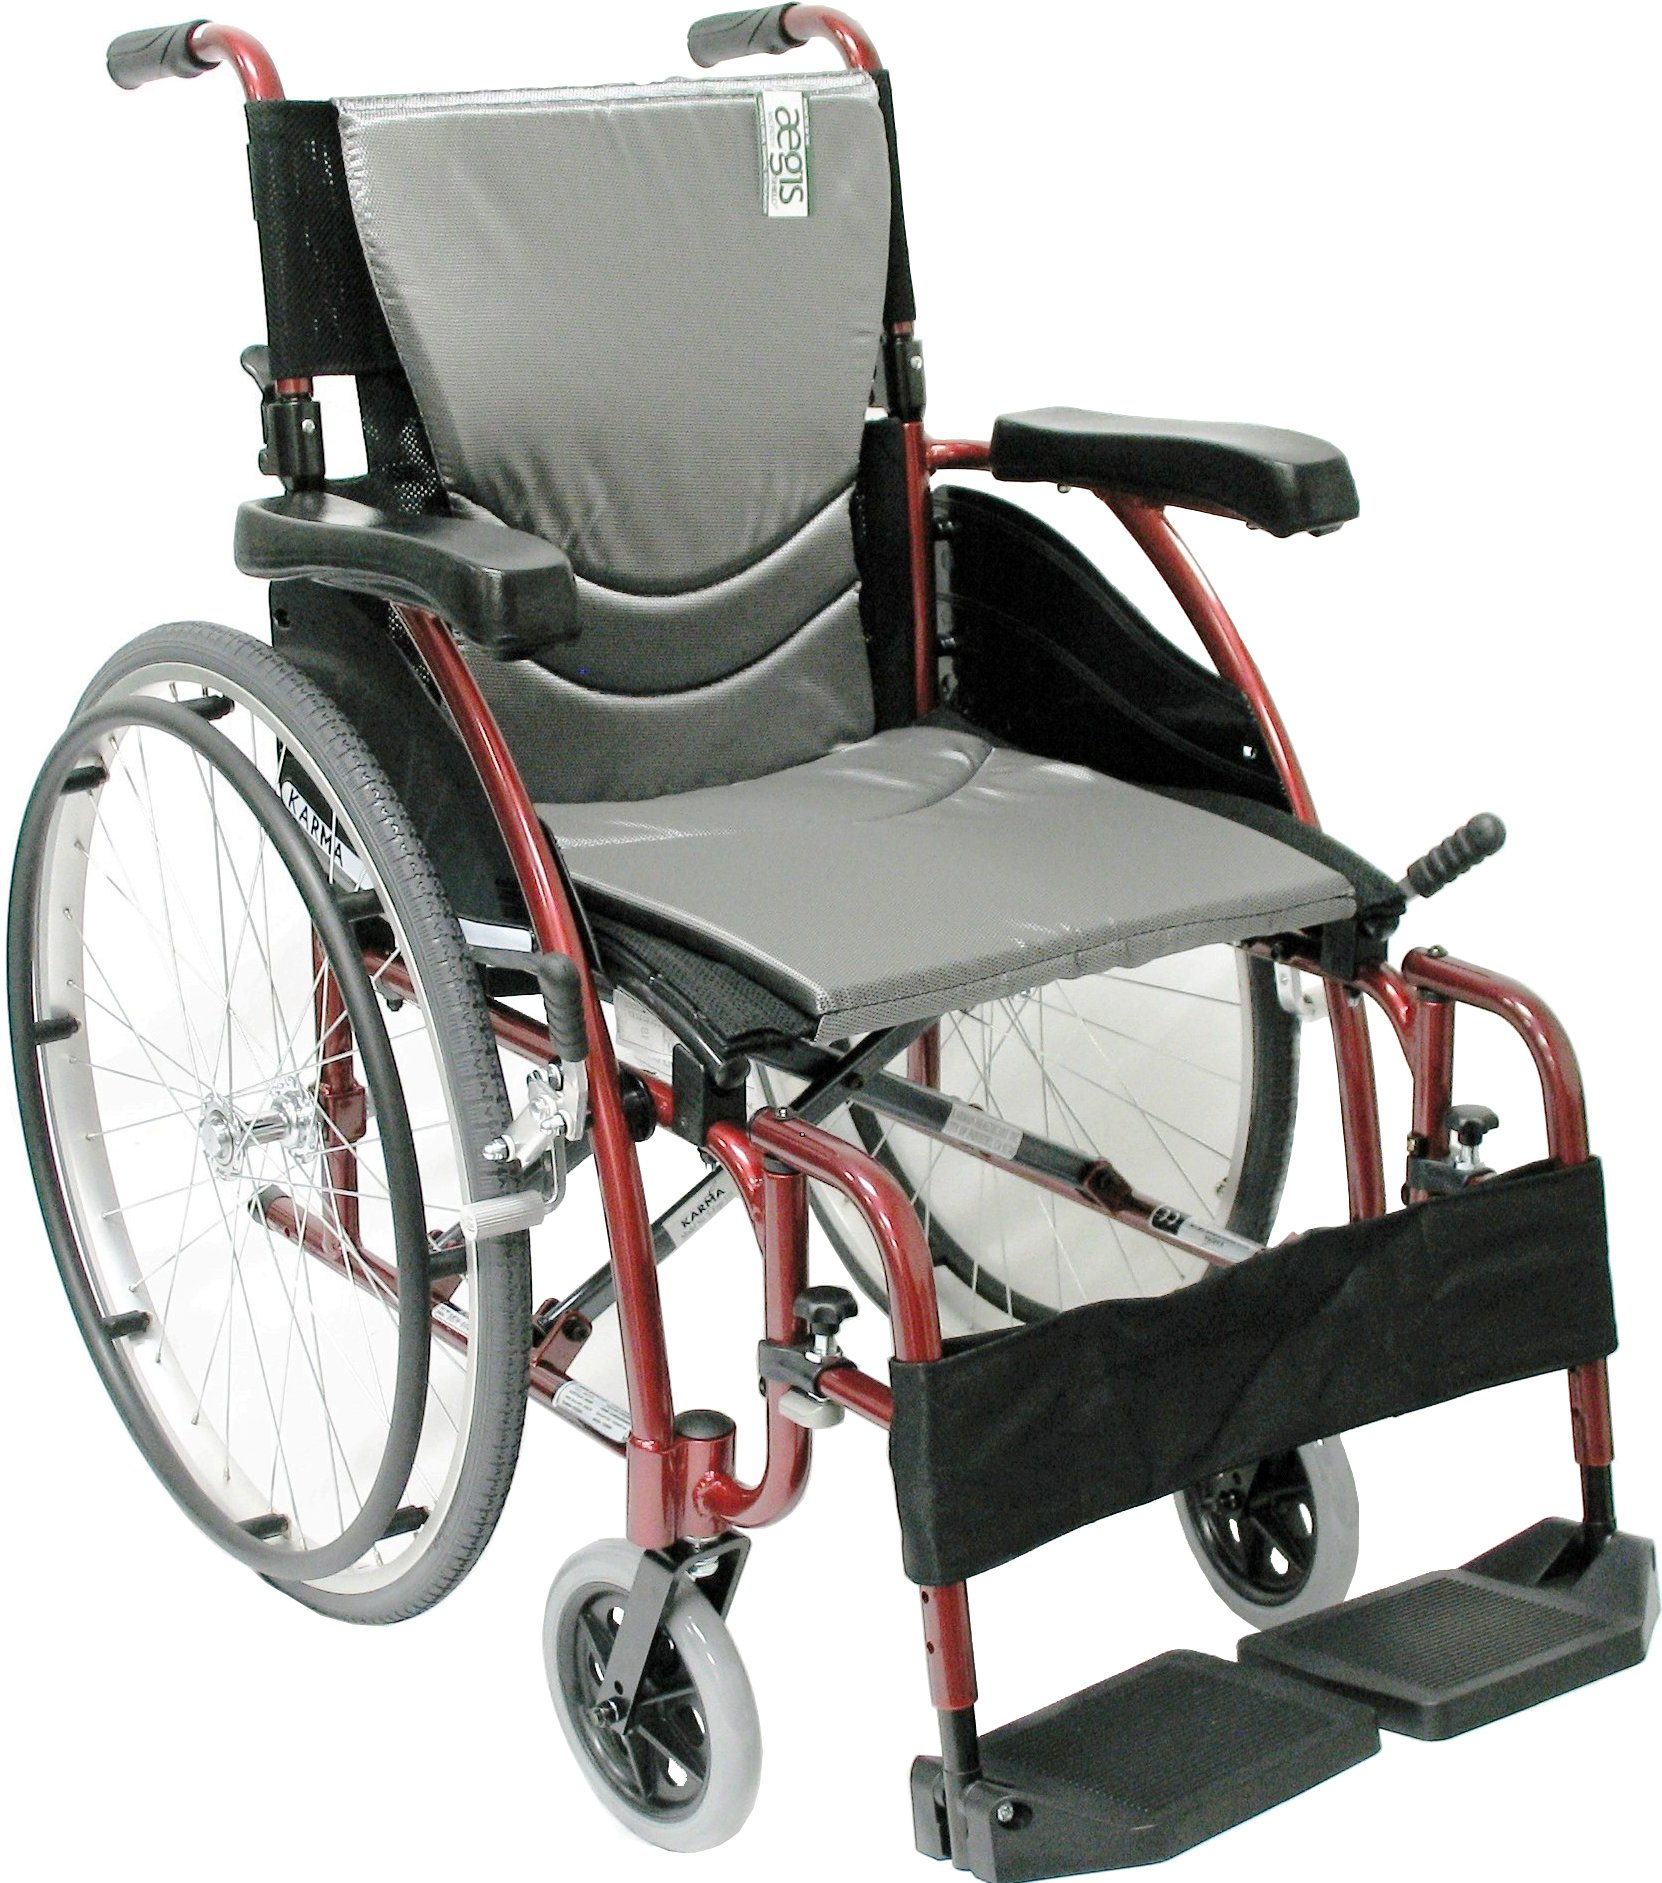 Karman Healthcare S-115 Ergonomic Ultra Lightweight Manual Wheelchair, Rose Red, 20'' Seat Width by Karman Healthcare